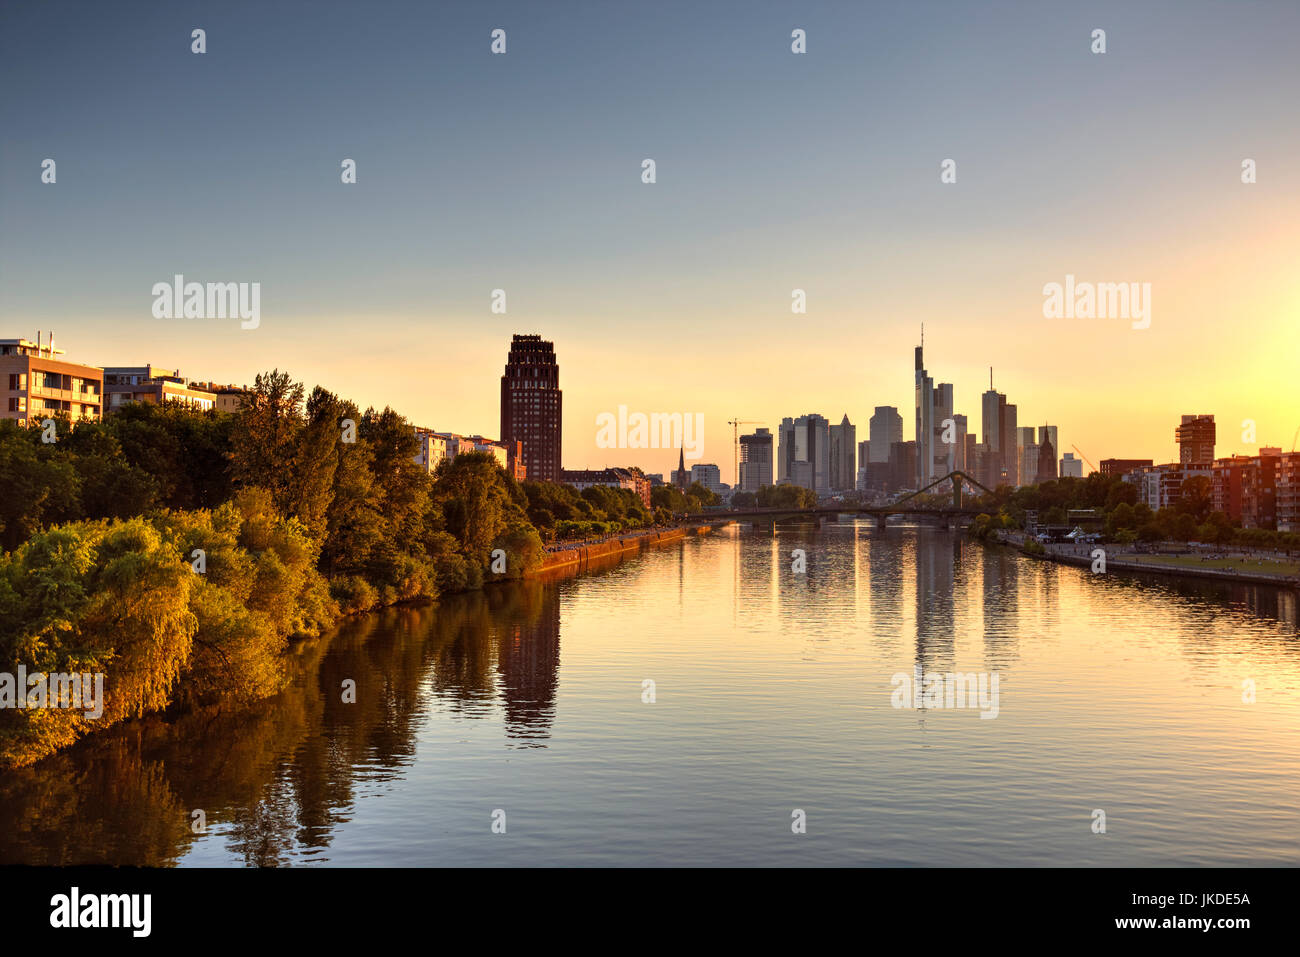 Frankfurt skyscrapers reflected on Main River and the golden hour, Germany - Stock Image